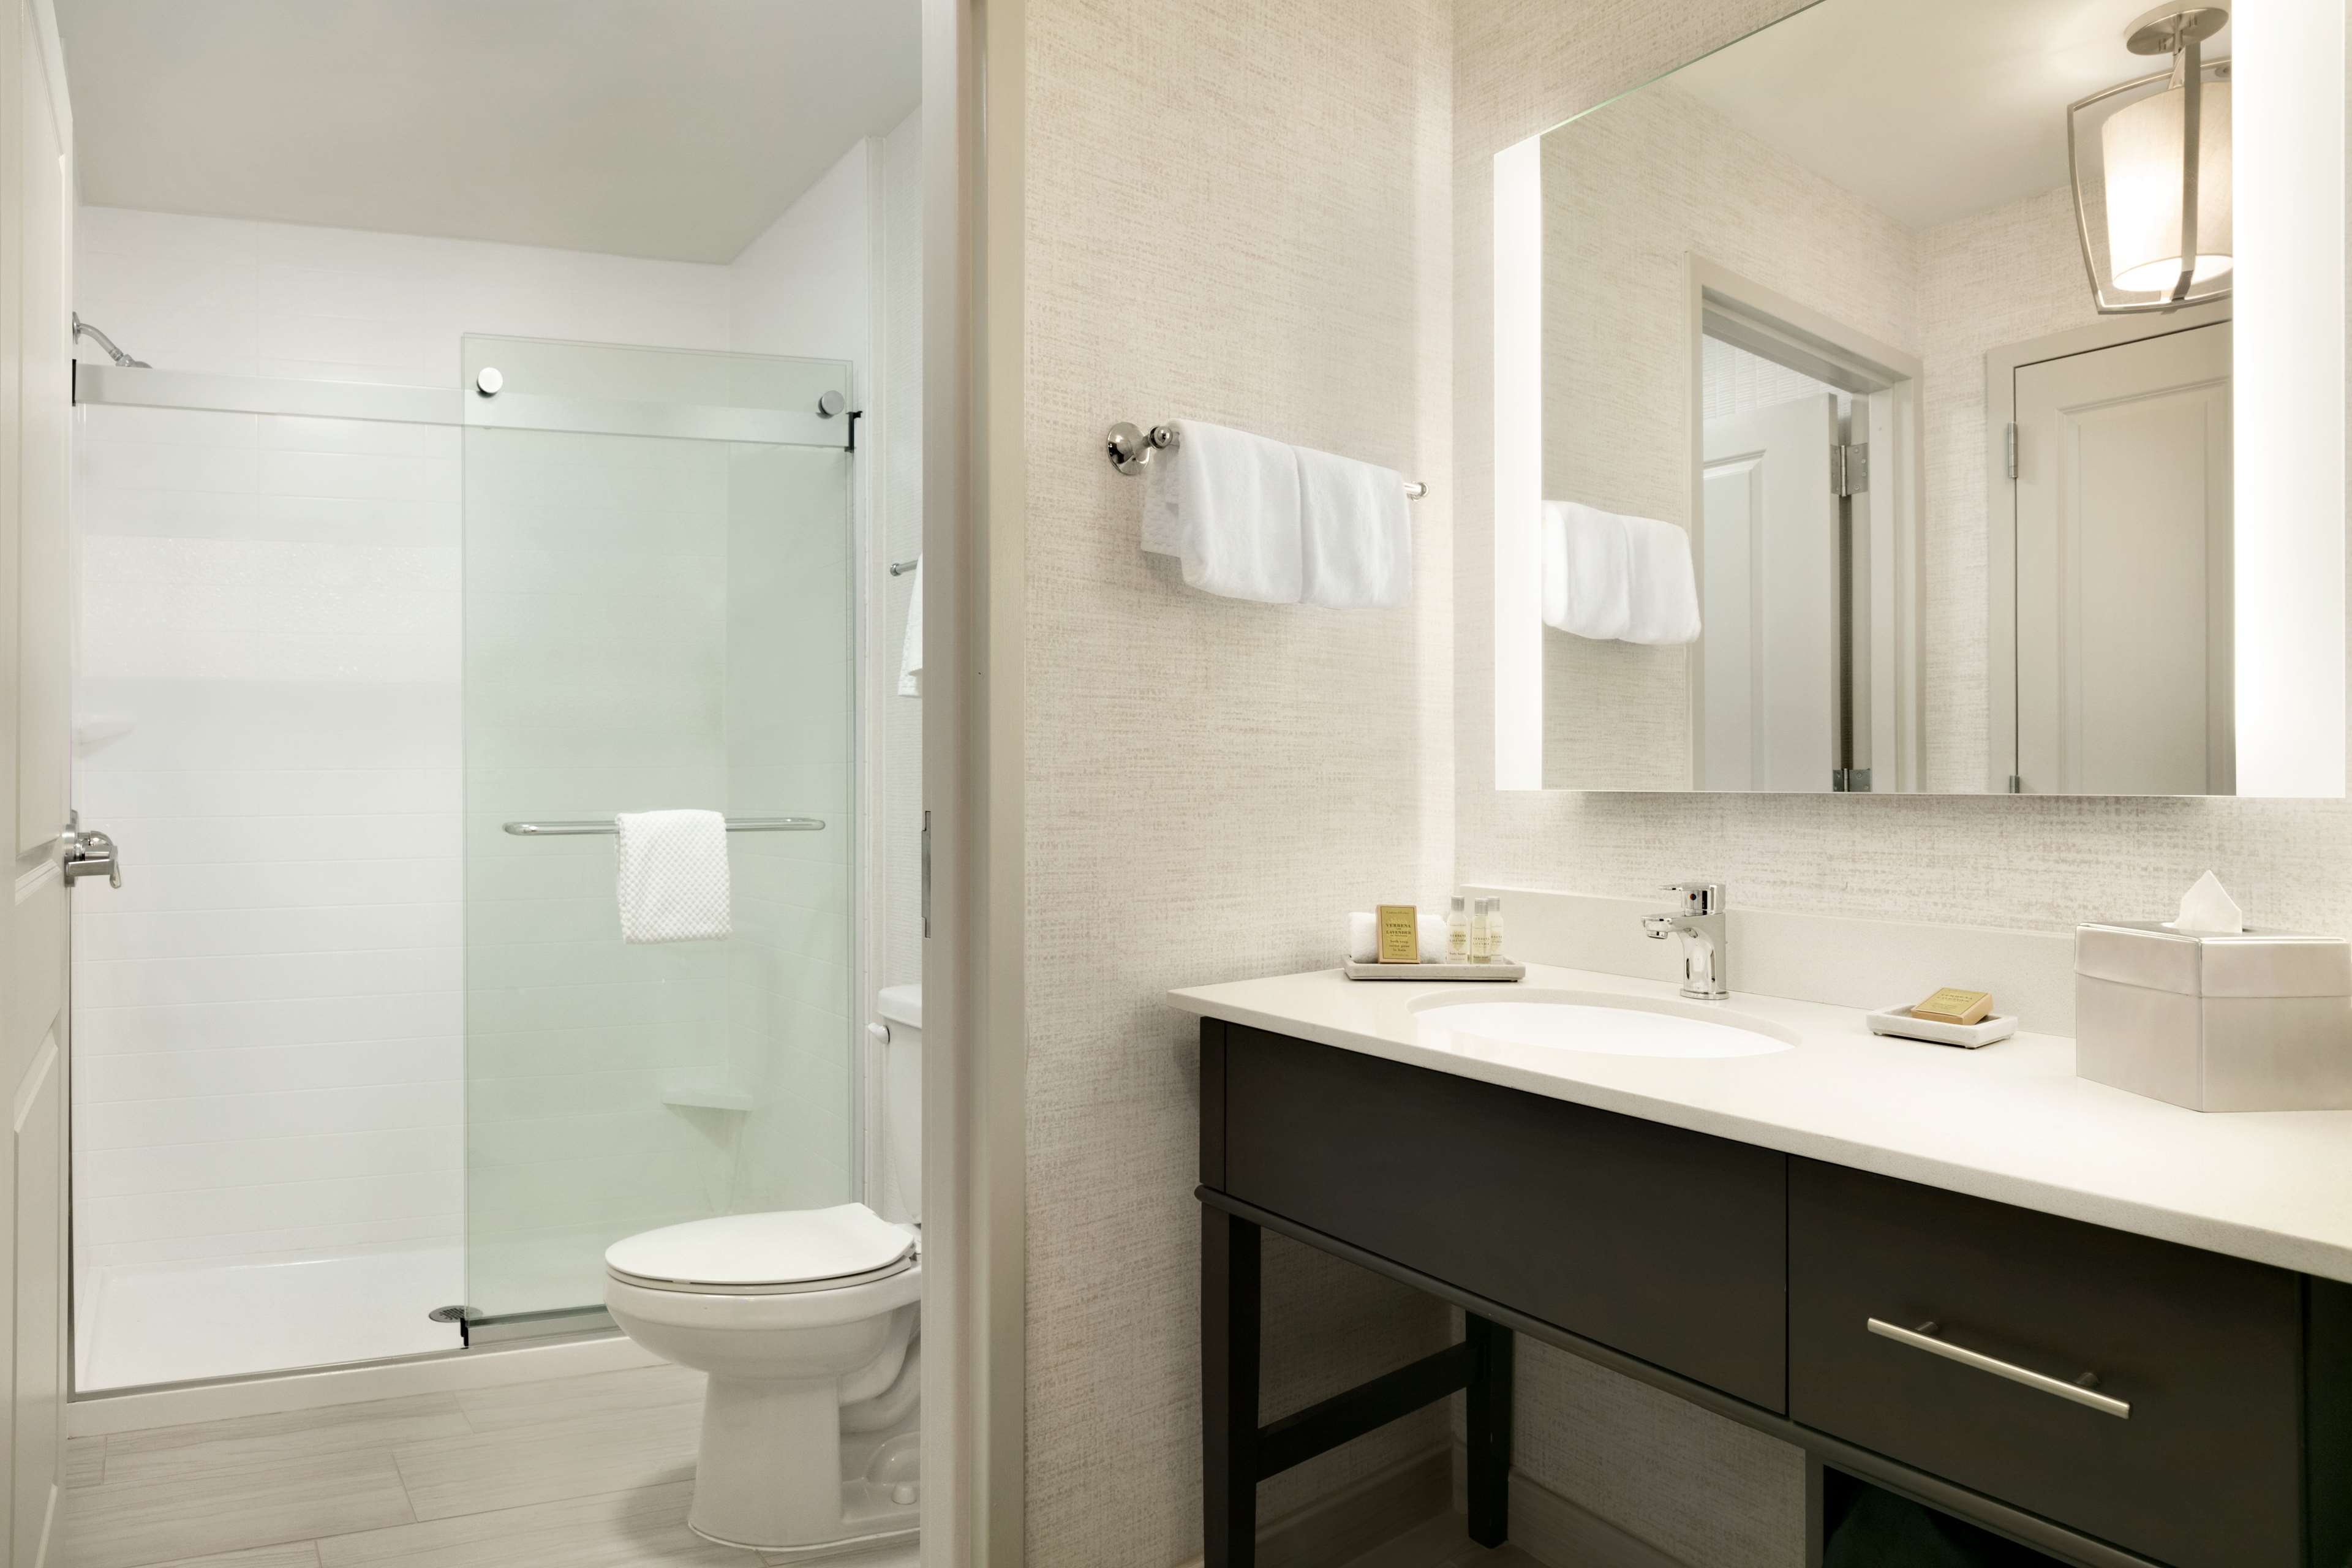 DoubleTree by Hilton McLean Tysons image 12